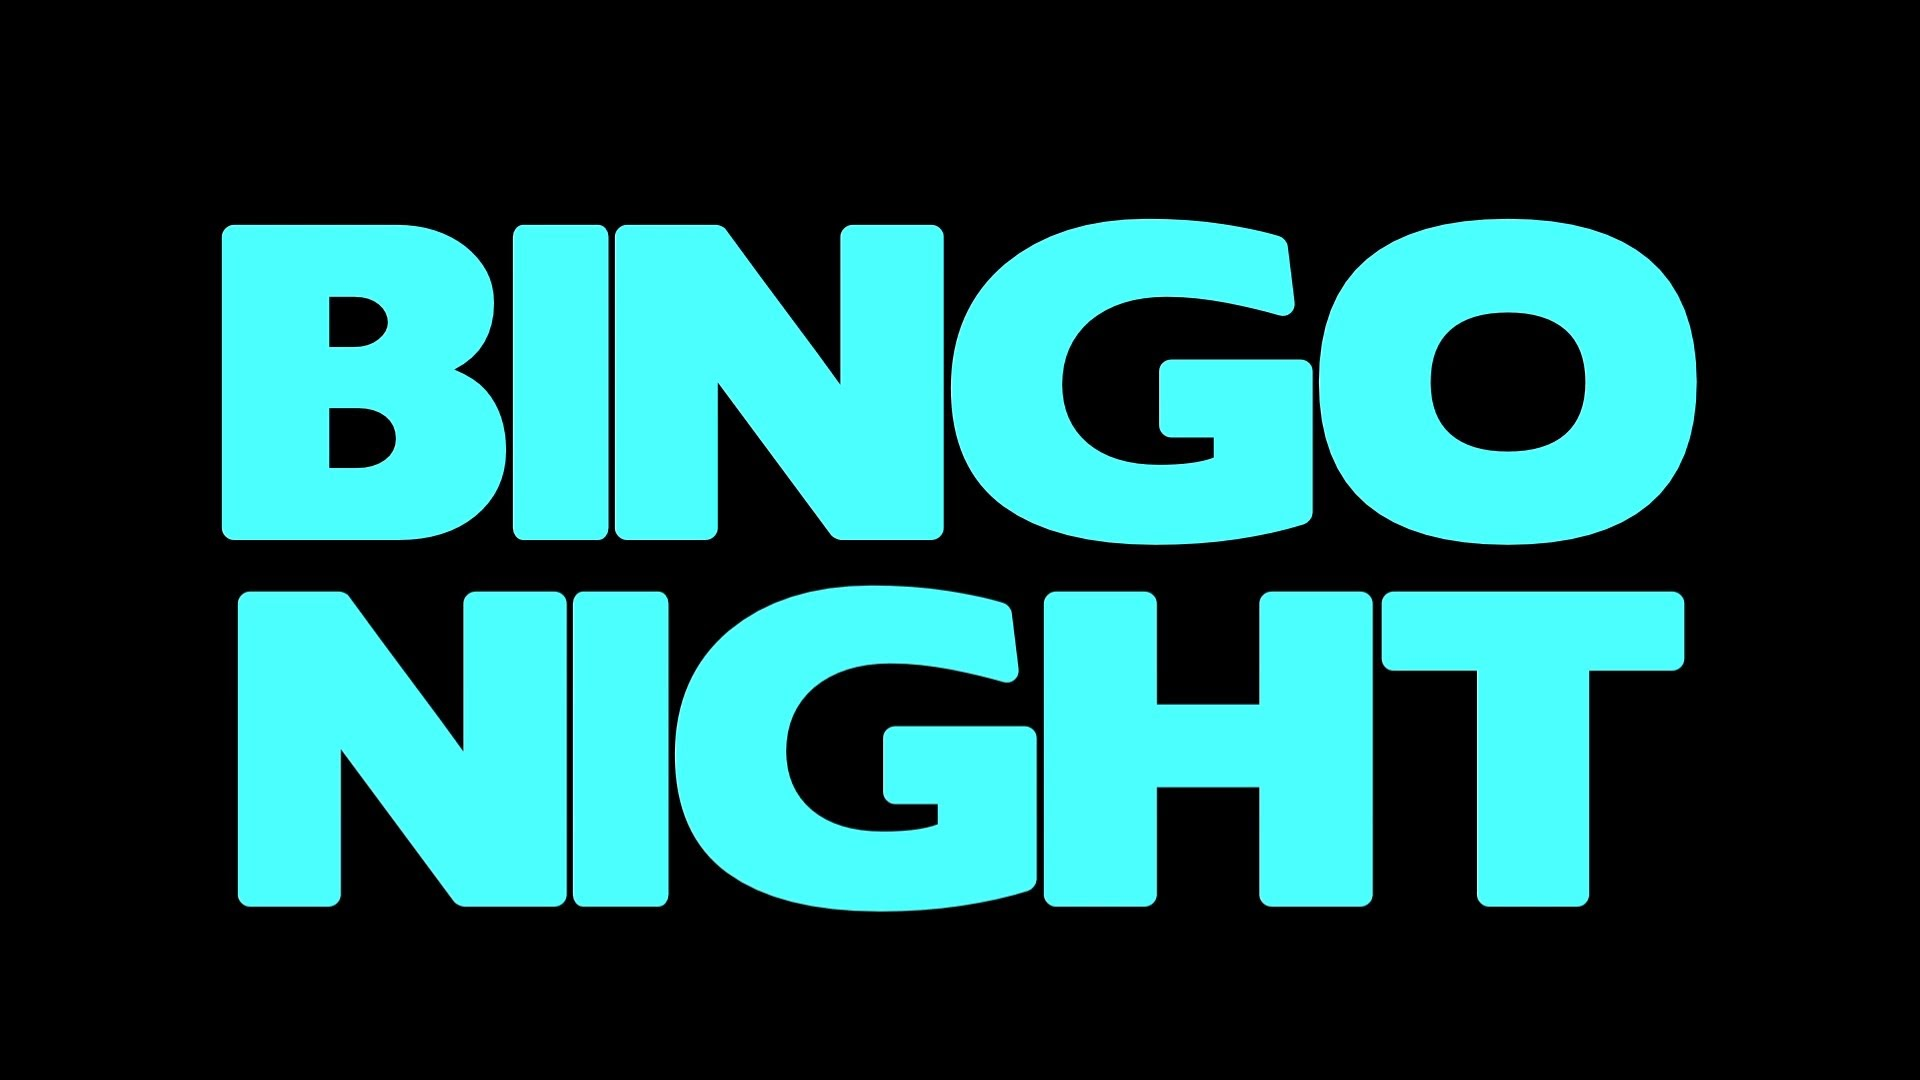 bingo-night.jpg